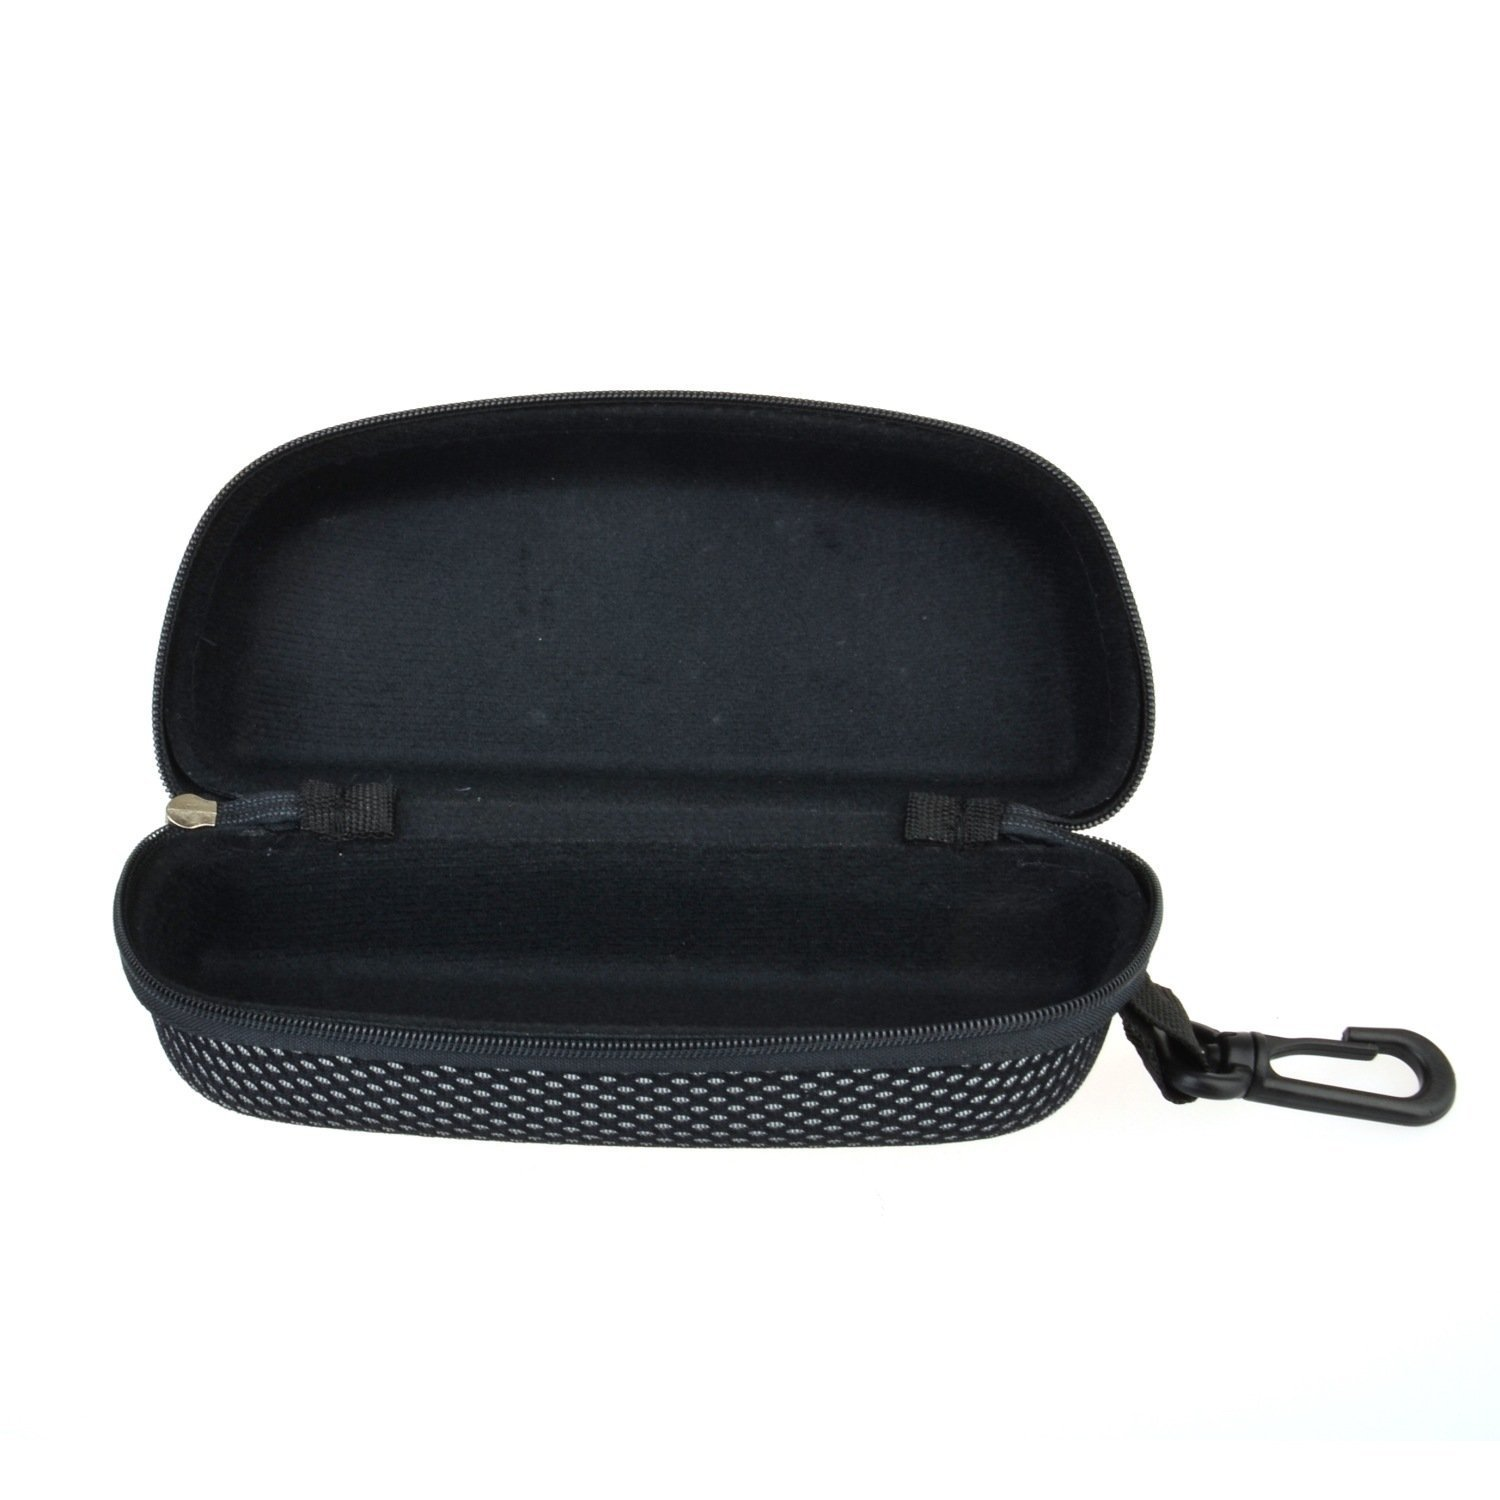 Highfive Zipper Hook EVA Shockproof Waterproof Ski Glasses Carrying Case Eyewear Box